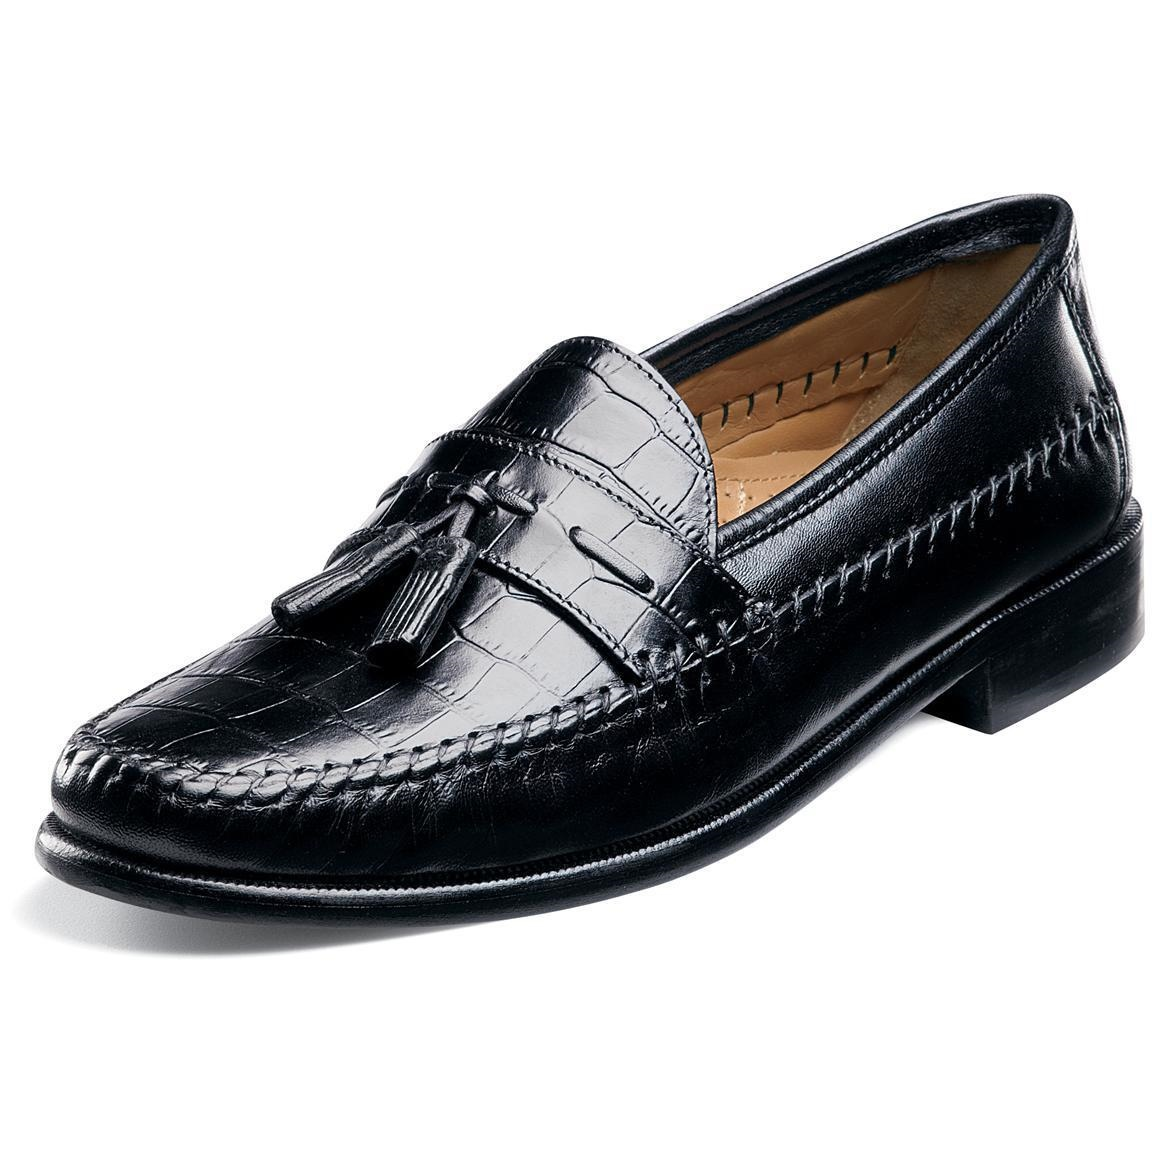 Men S Florsheim Shoes Style  With Tassel